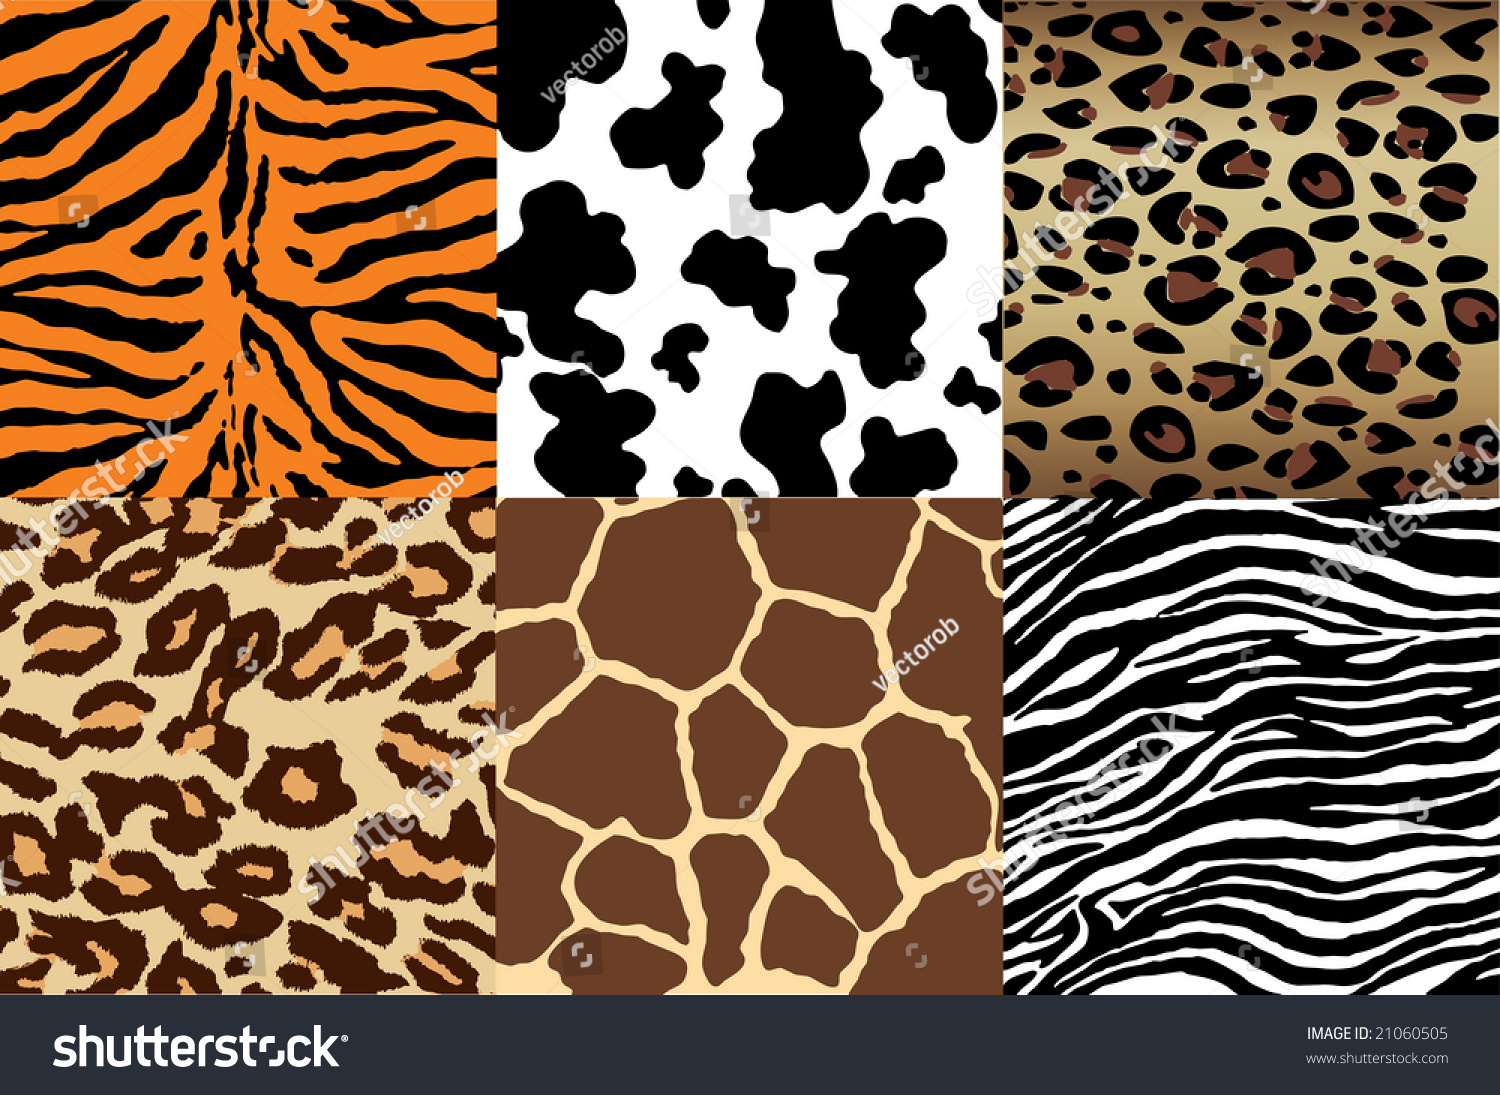 Uncategorized Animal Pictures To Print animal print backgrounds stock vector 21060505 shutterstock backgrounds